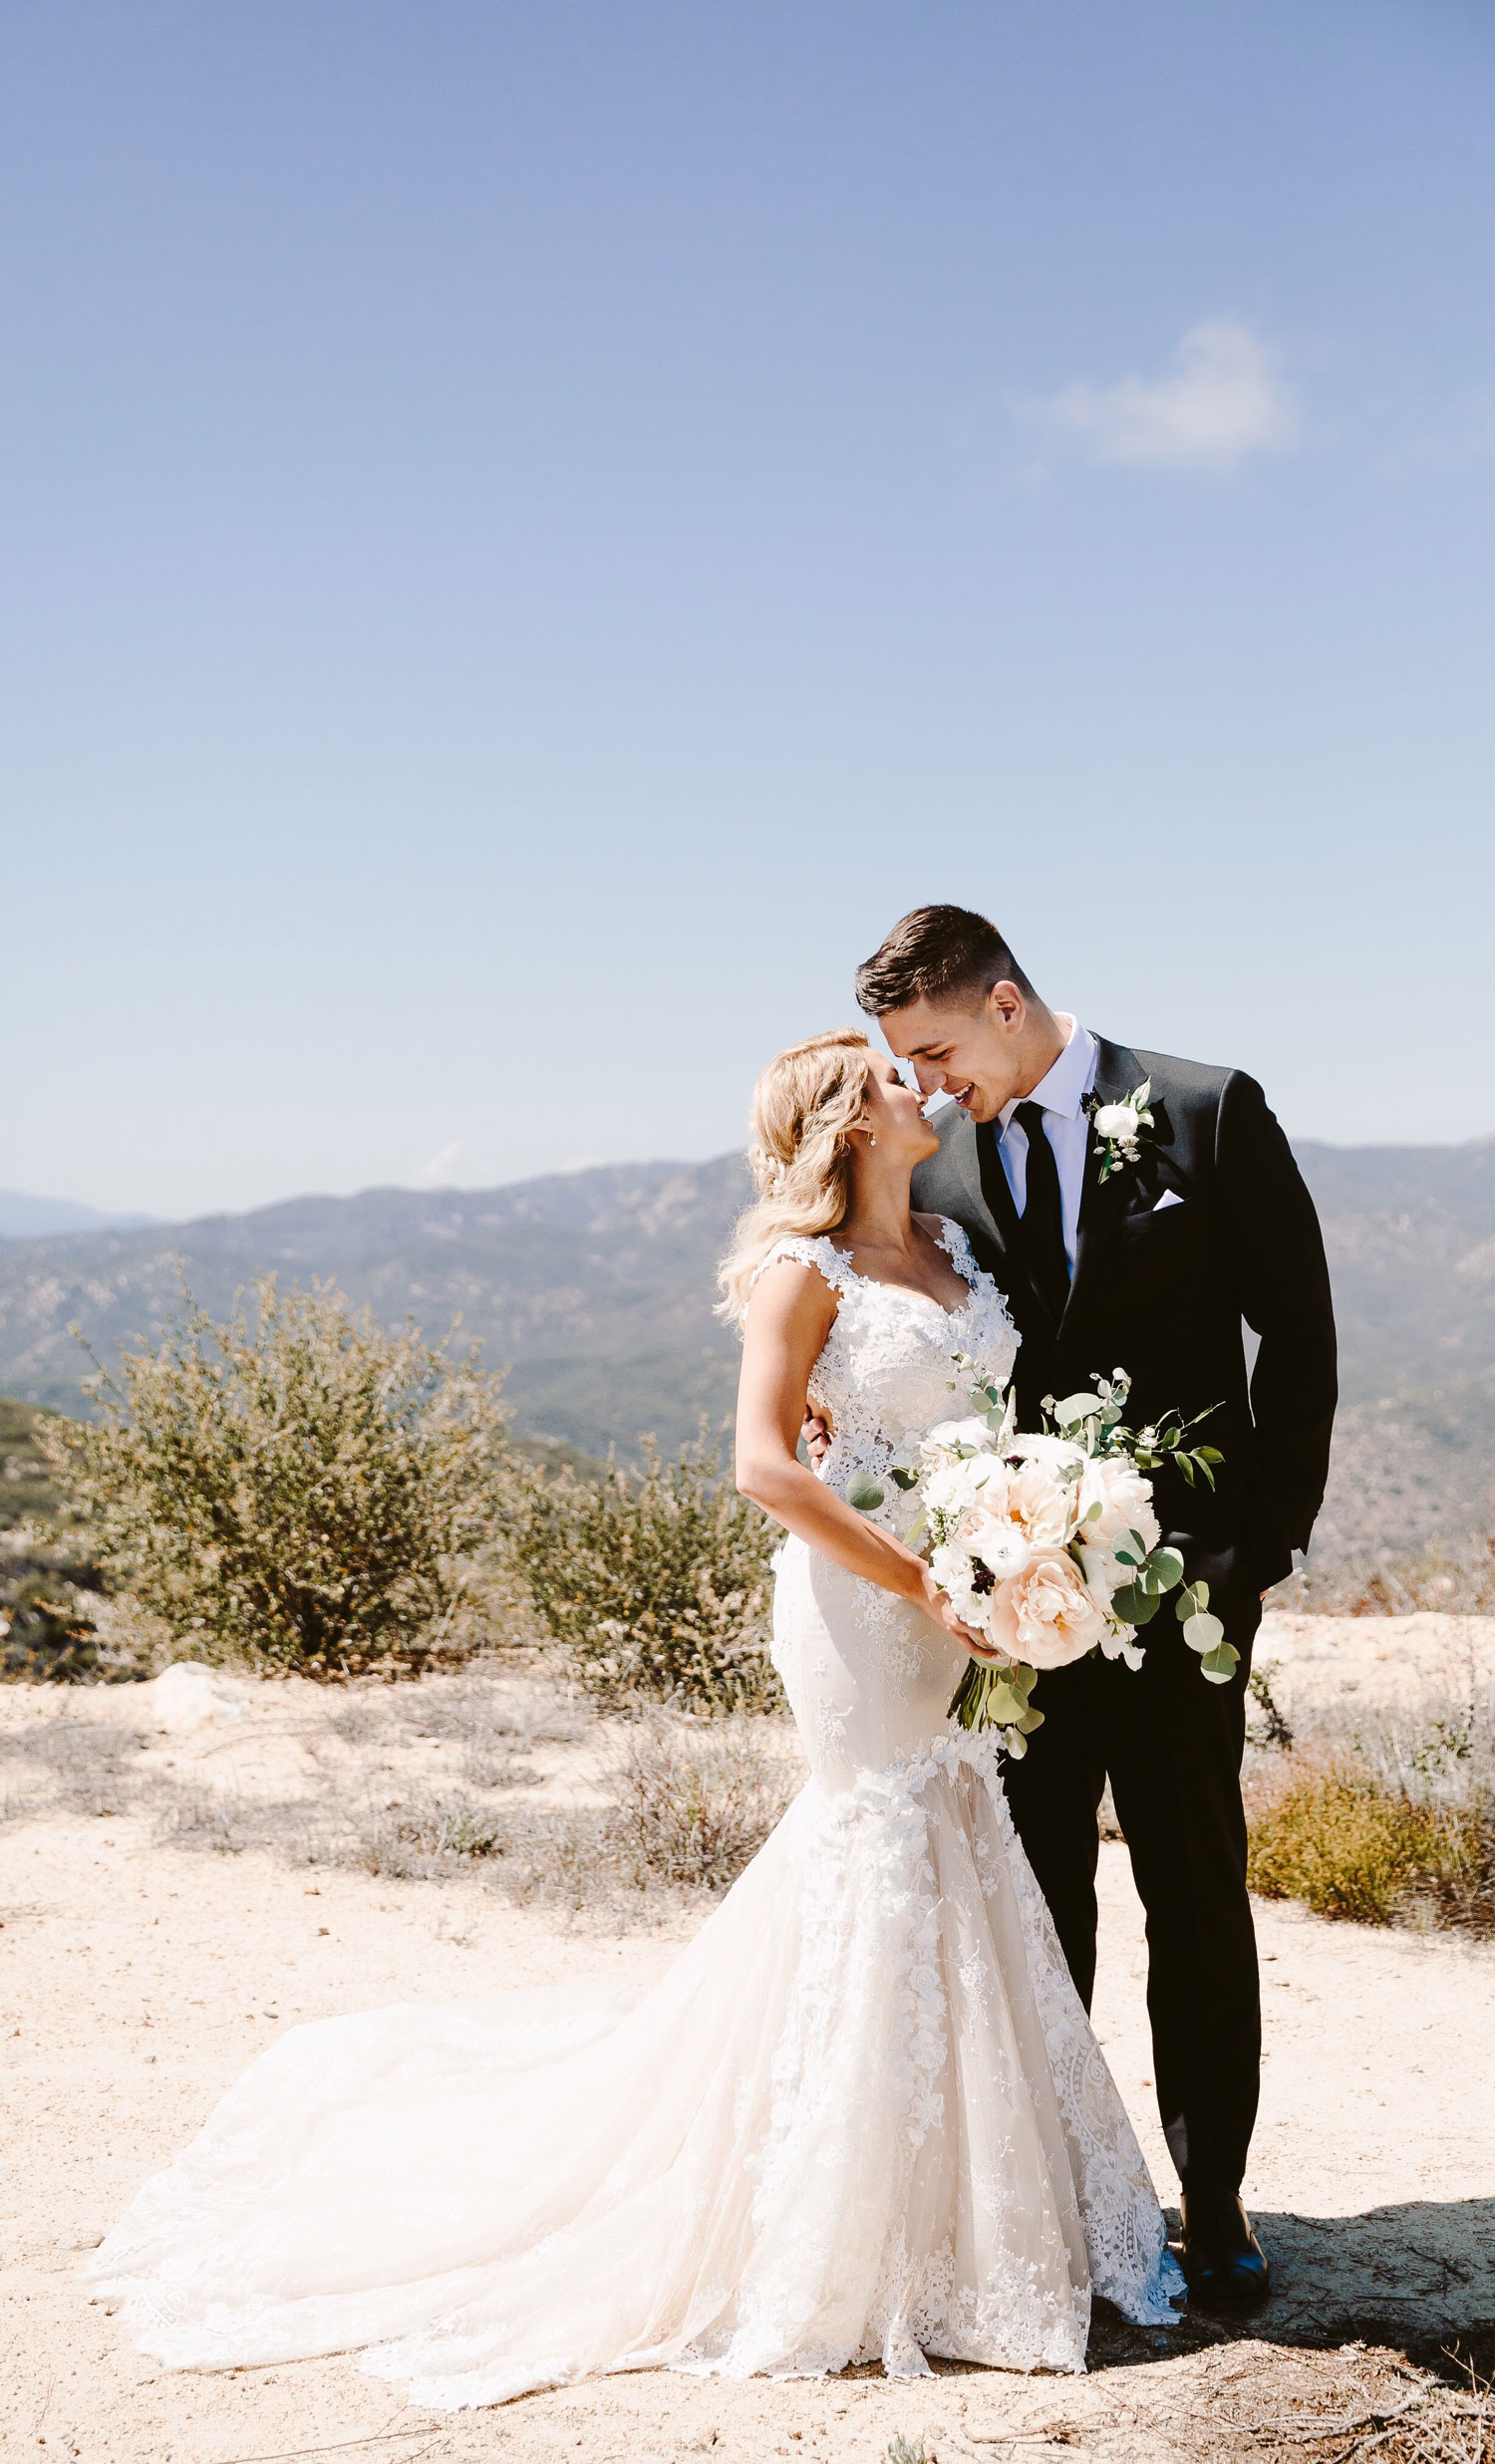 Real bride in Galia Lahav wedding dress Tori Kelly in trumpet mermaid wedding dress with groom Andre Murillo